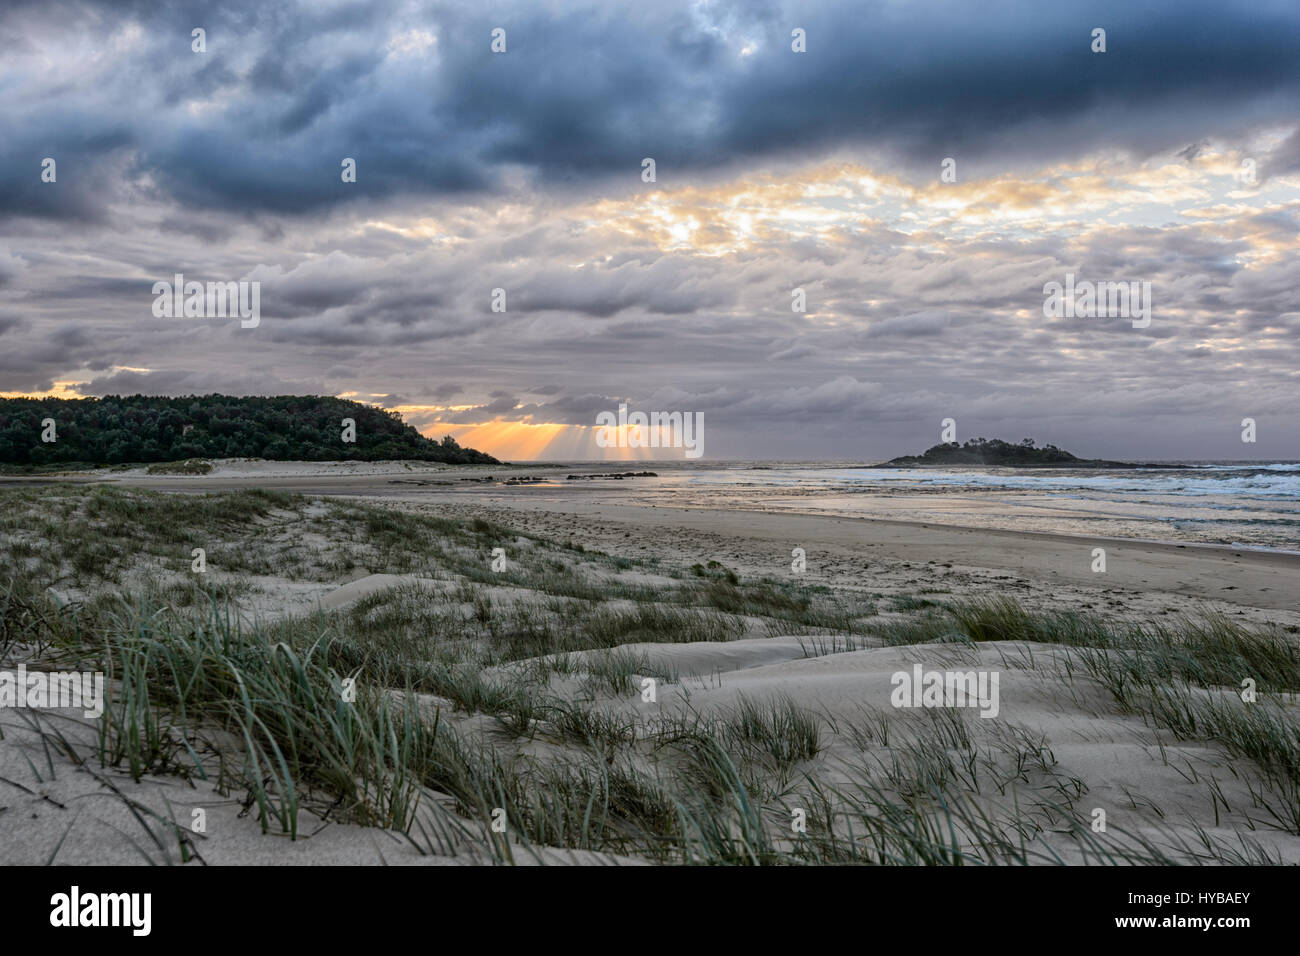 Atmospheric sky at sunrise over Conjola Beach, Shoalhaven, South Coast, New South Wales, NSW, Australia - Stock Image